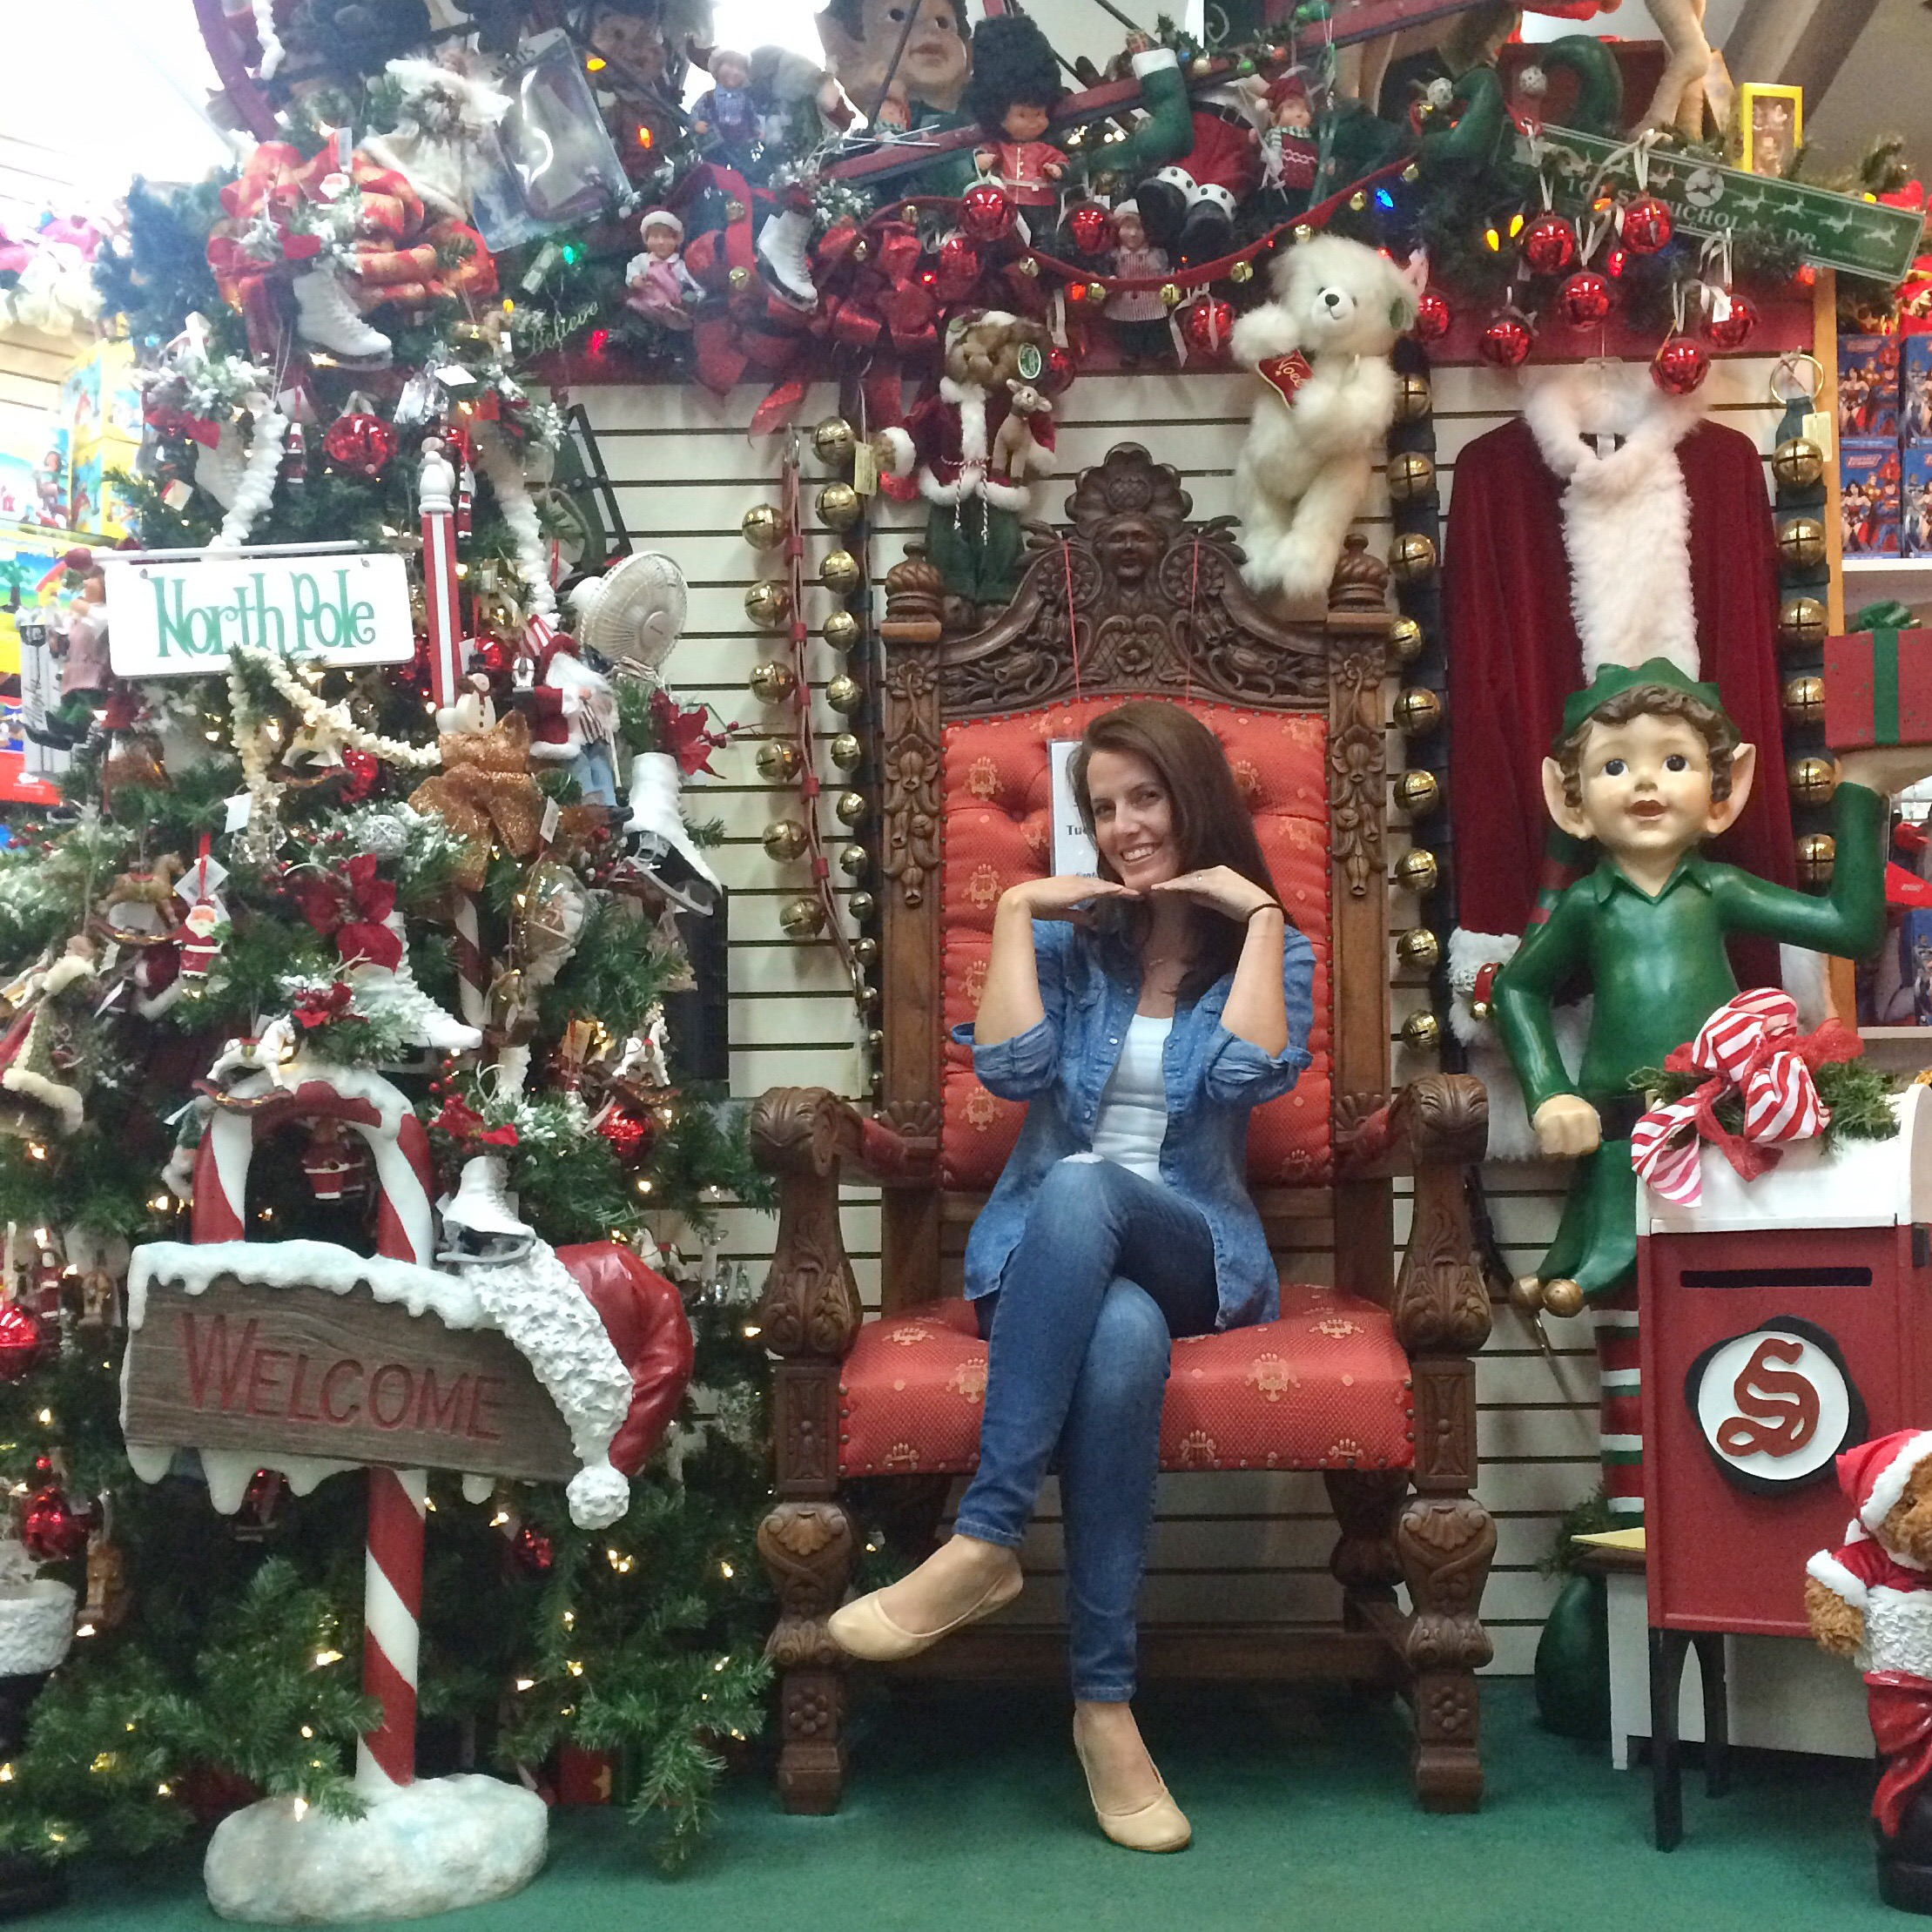 Reindeer games in north pole alaska travels a dance away north pole alaska 99705 click here to get more info on how you can even request to receive letters from santa unfortunately i came on the only day santa spiritdancerdesigns Image collections